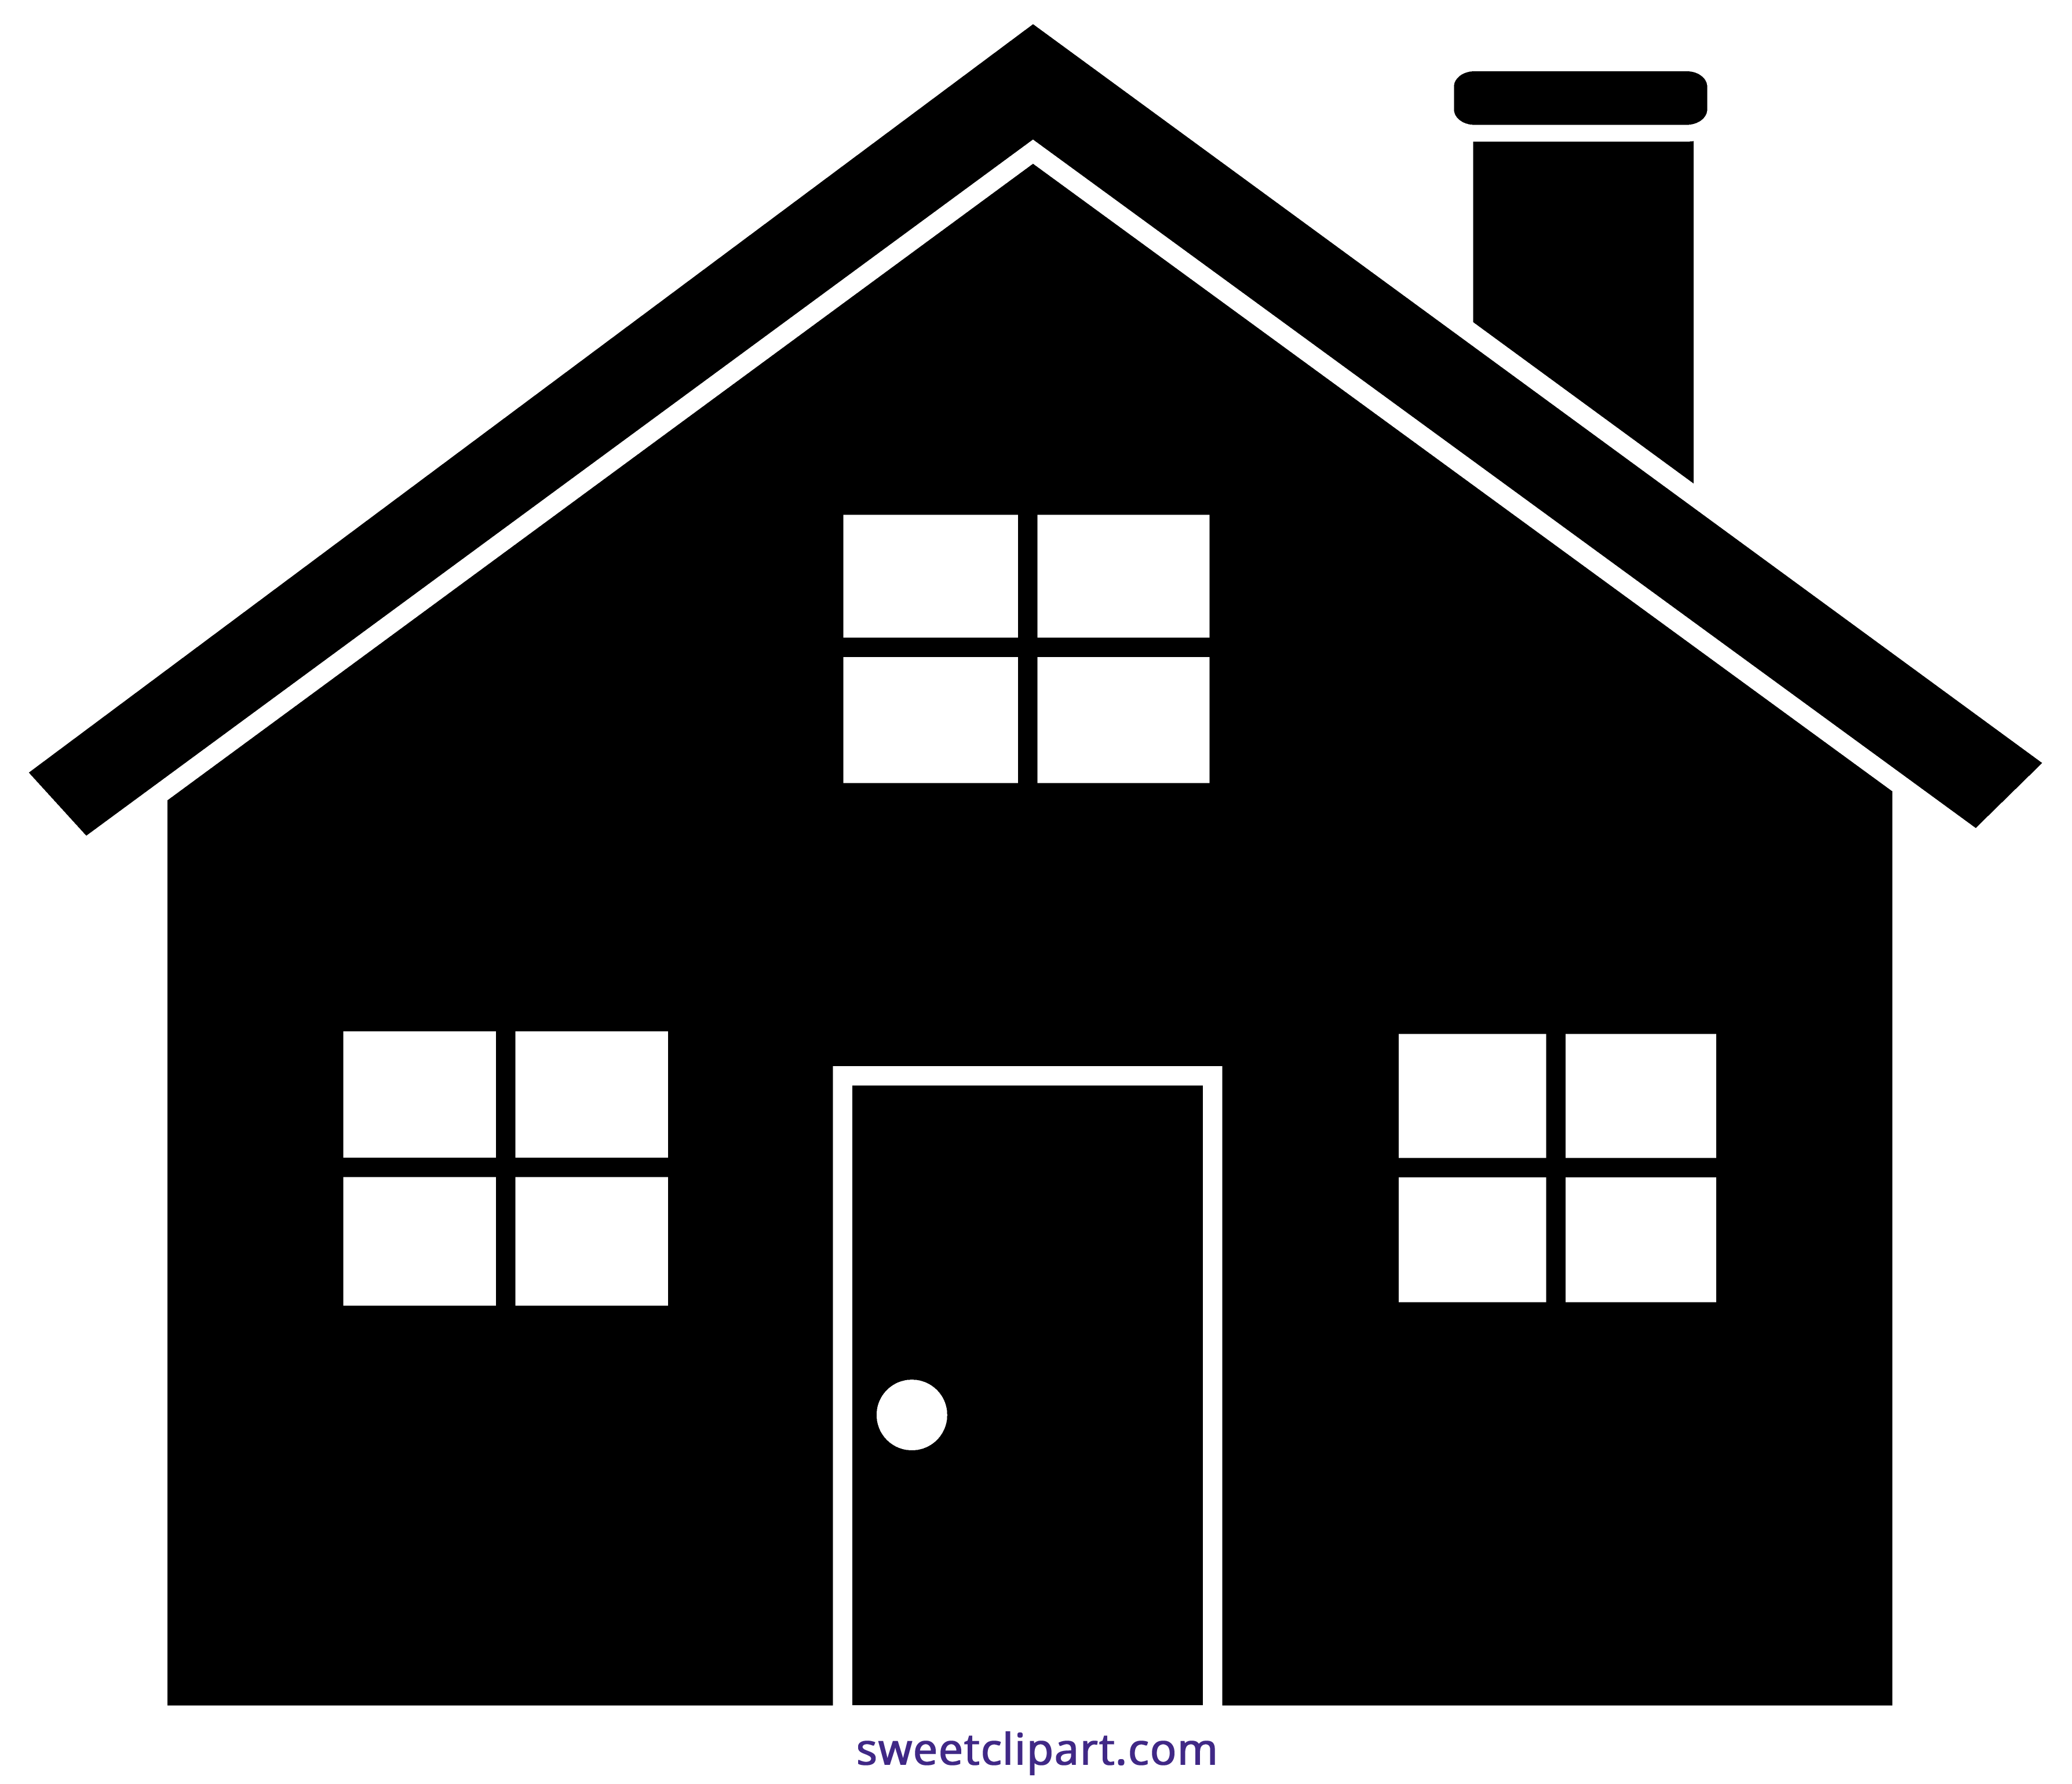 House black silhouette clip. Clipart home home sweet home